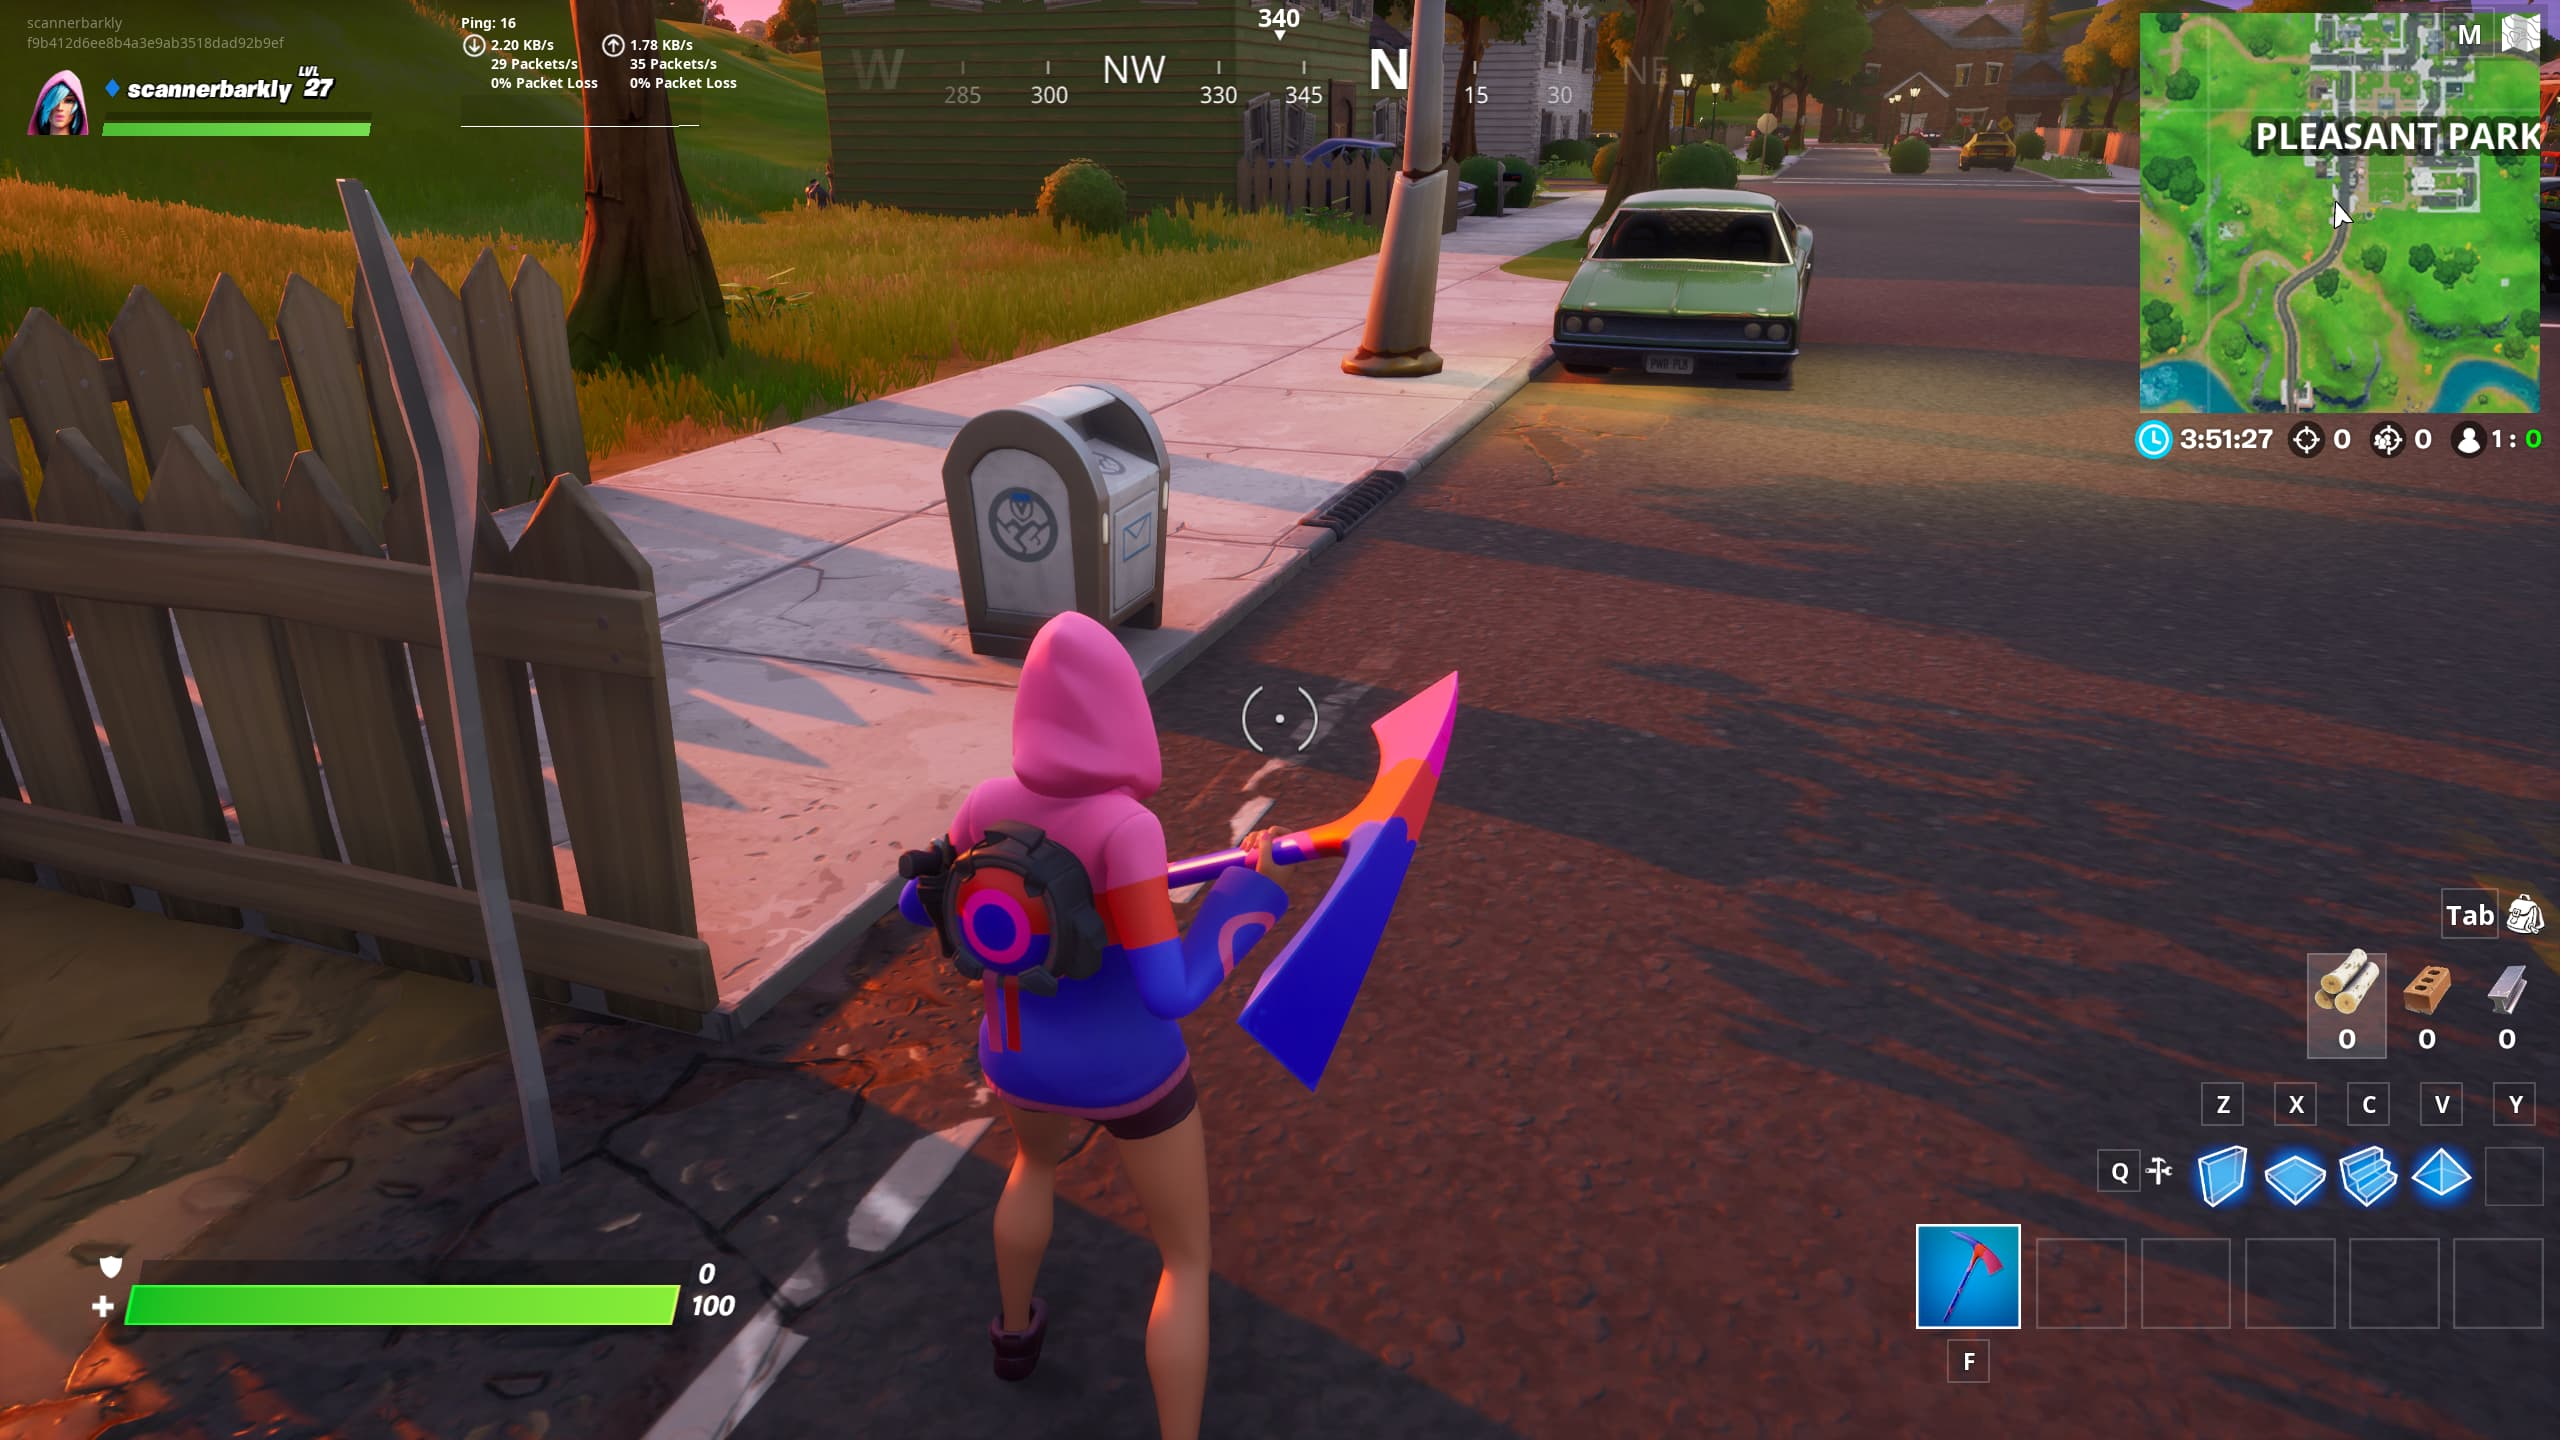 Pleasant Park Ghost